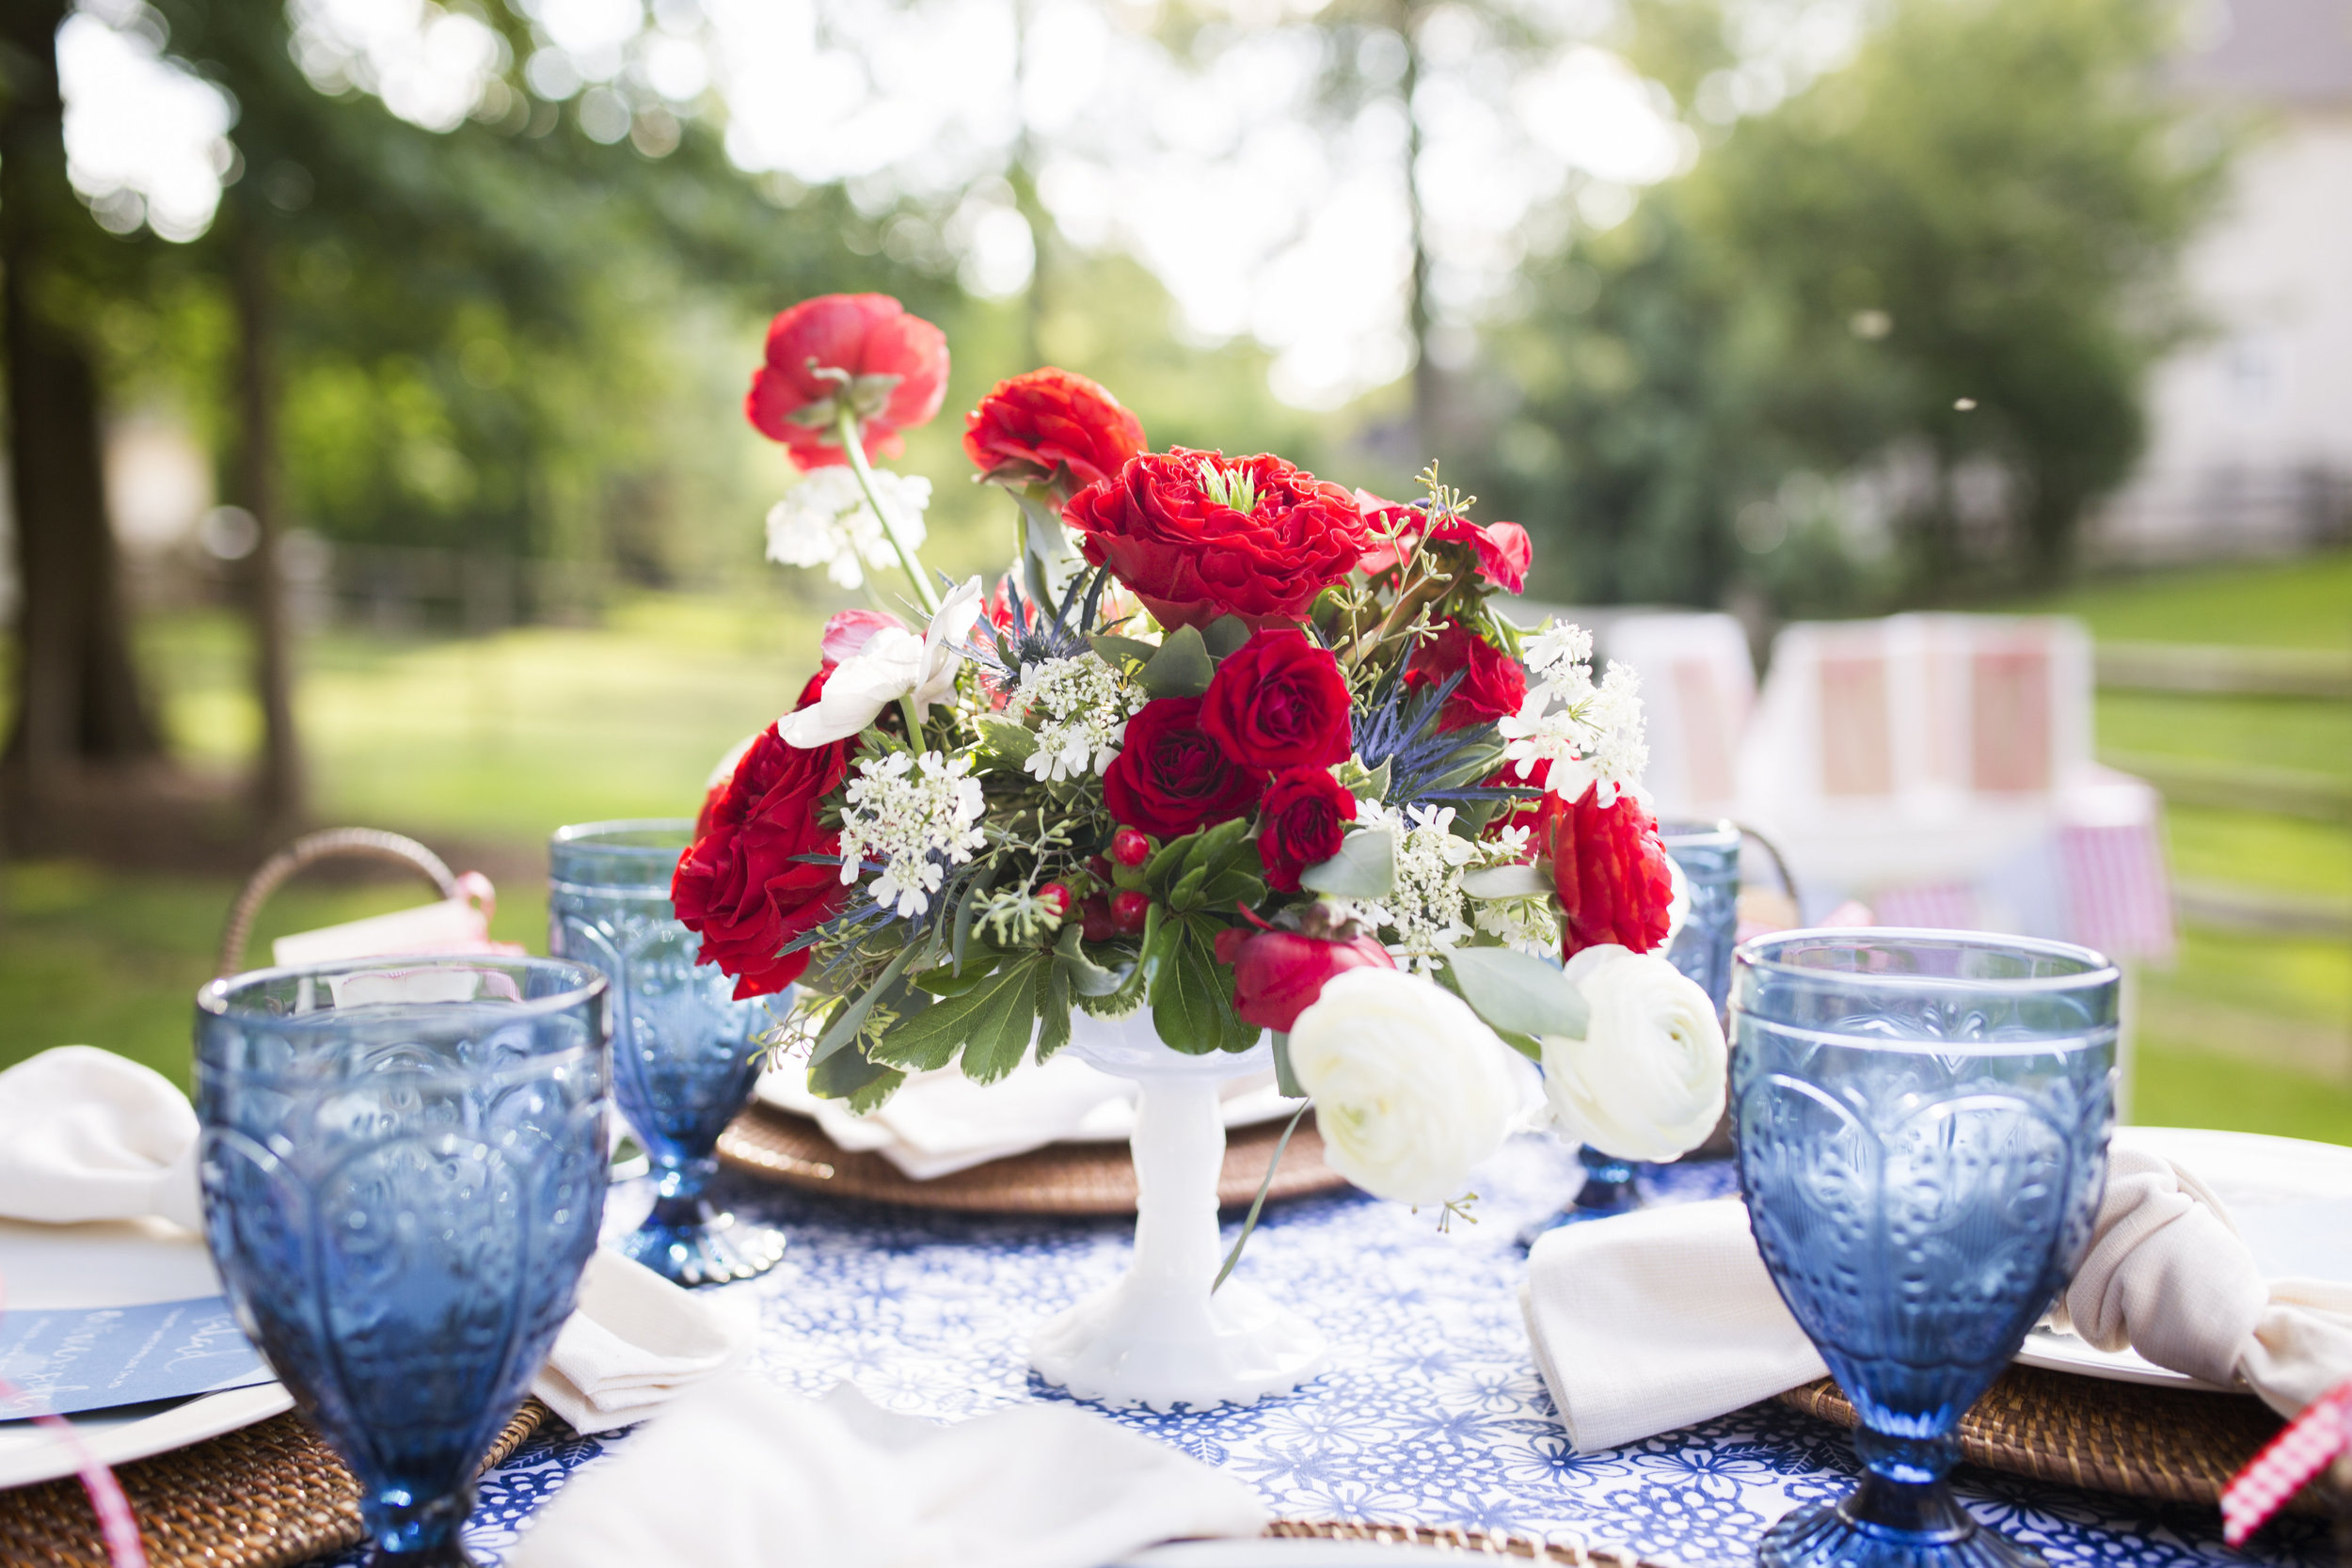 A Charming Backyard Fourth of July Party Styled by Cassandra Clair of Event Prep